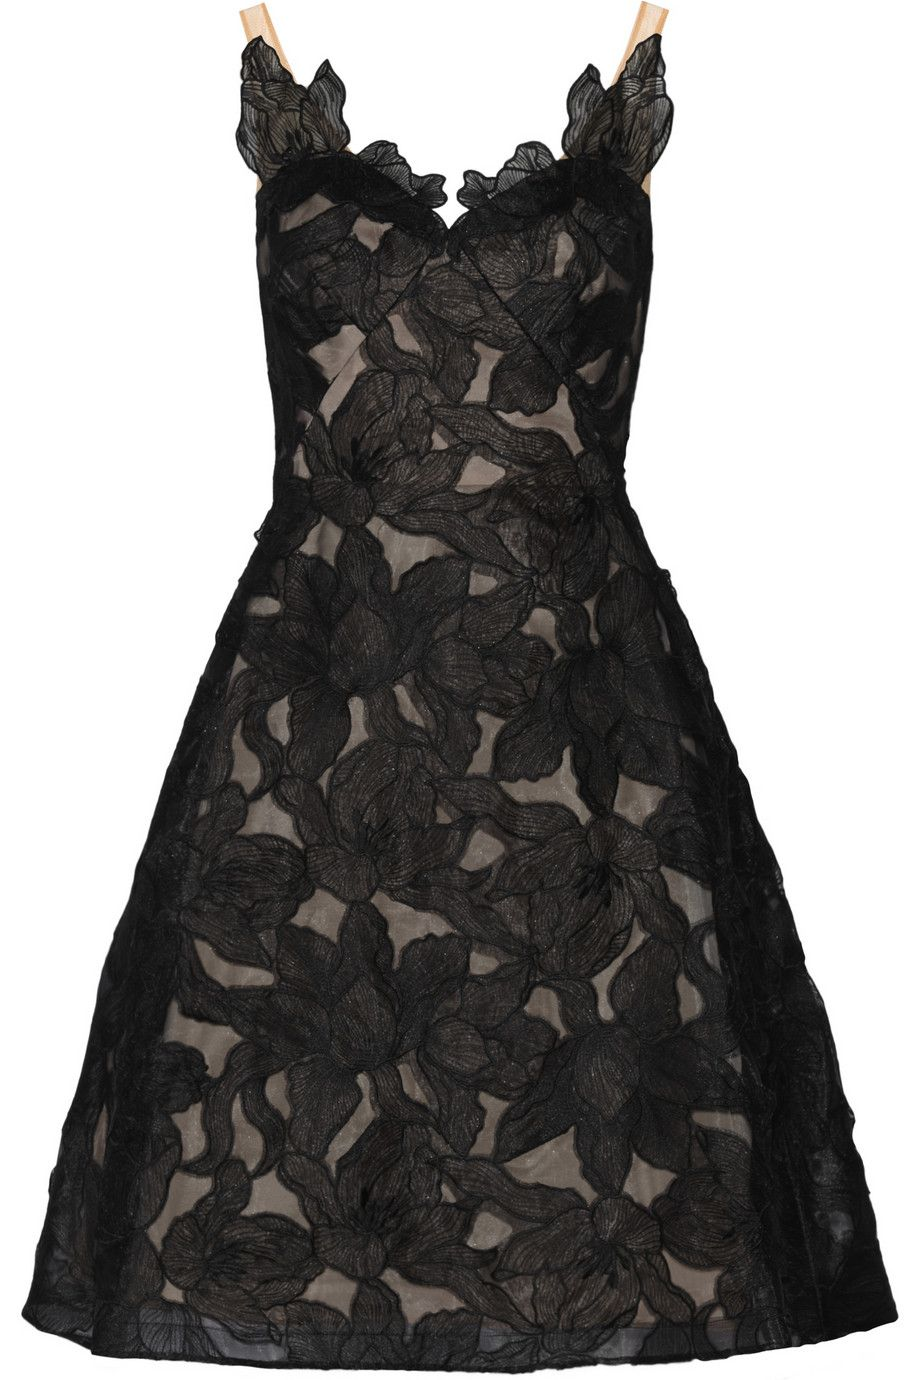 Le Meilleur Marchesa Notte Floral Embroidered Organza Dress My Ce Mois Ci